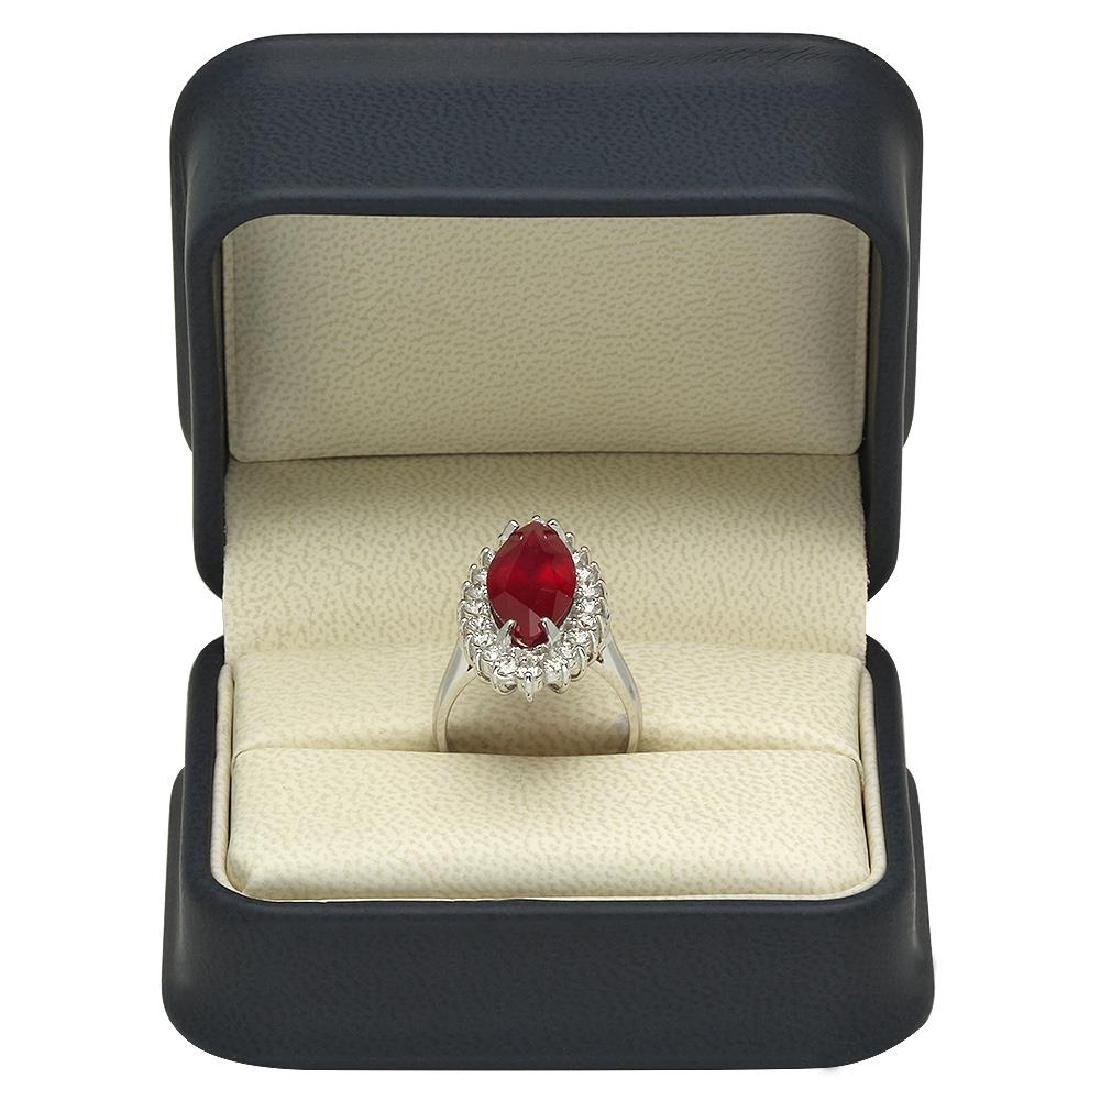 14K Gold 8.09ct Ruby 1.45ct Diamond Ring - 4